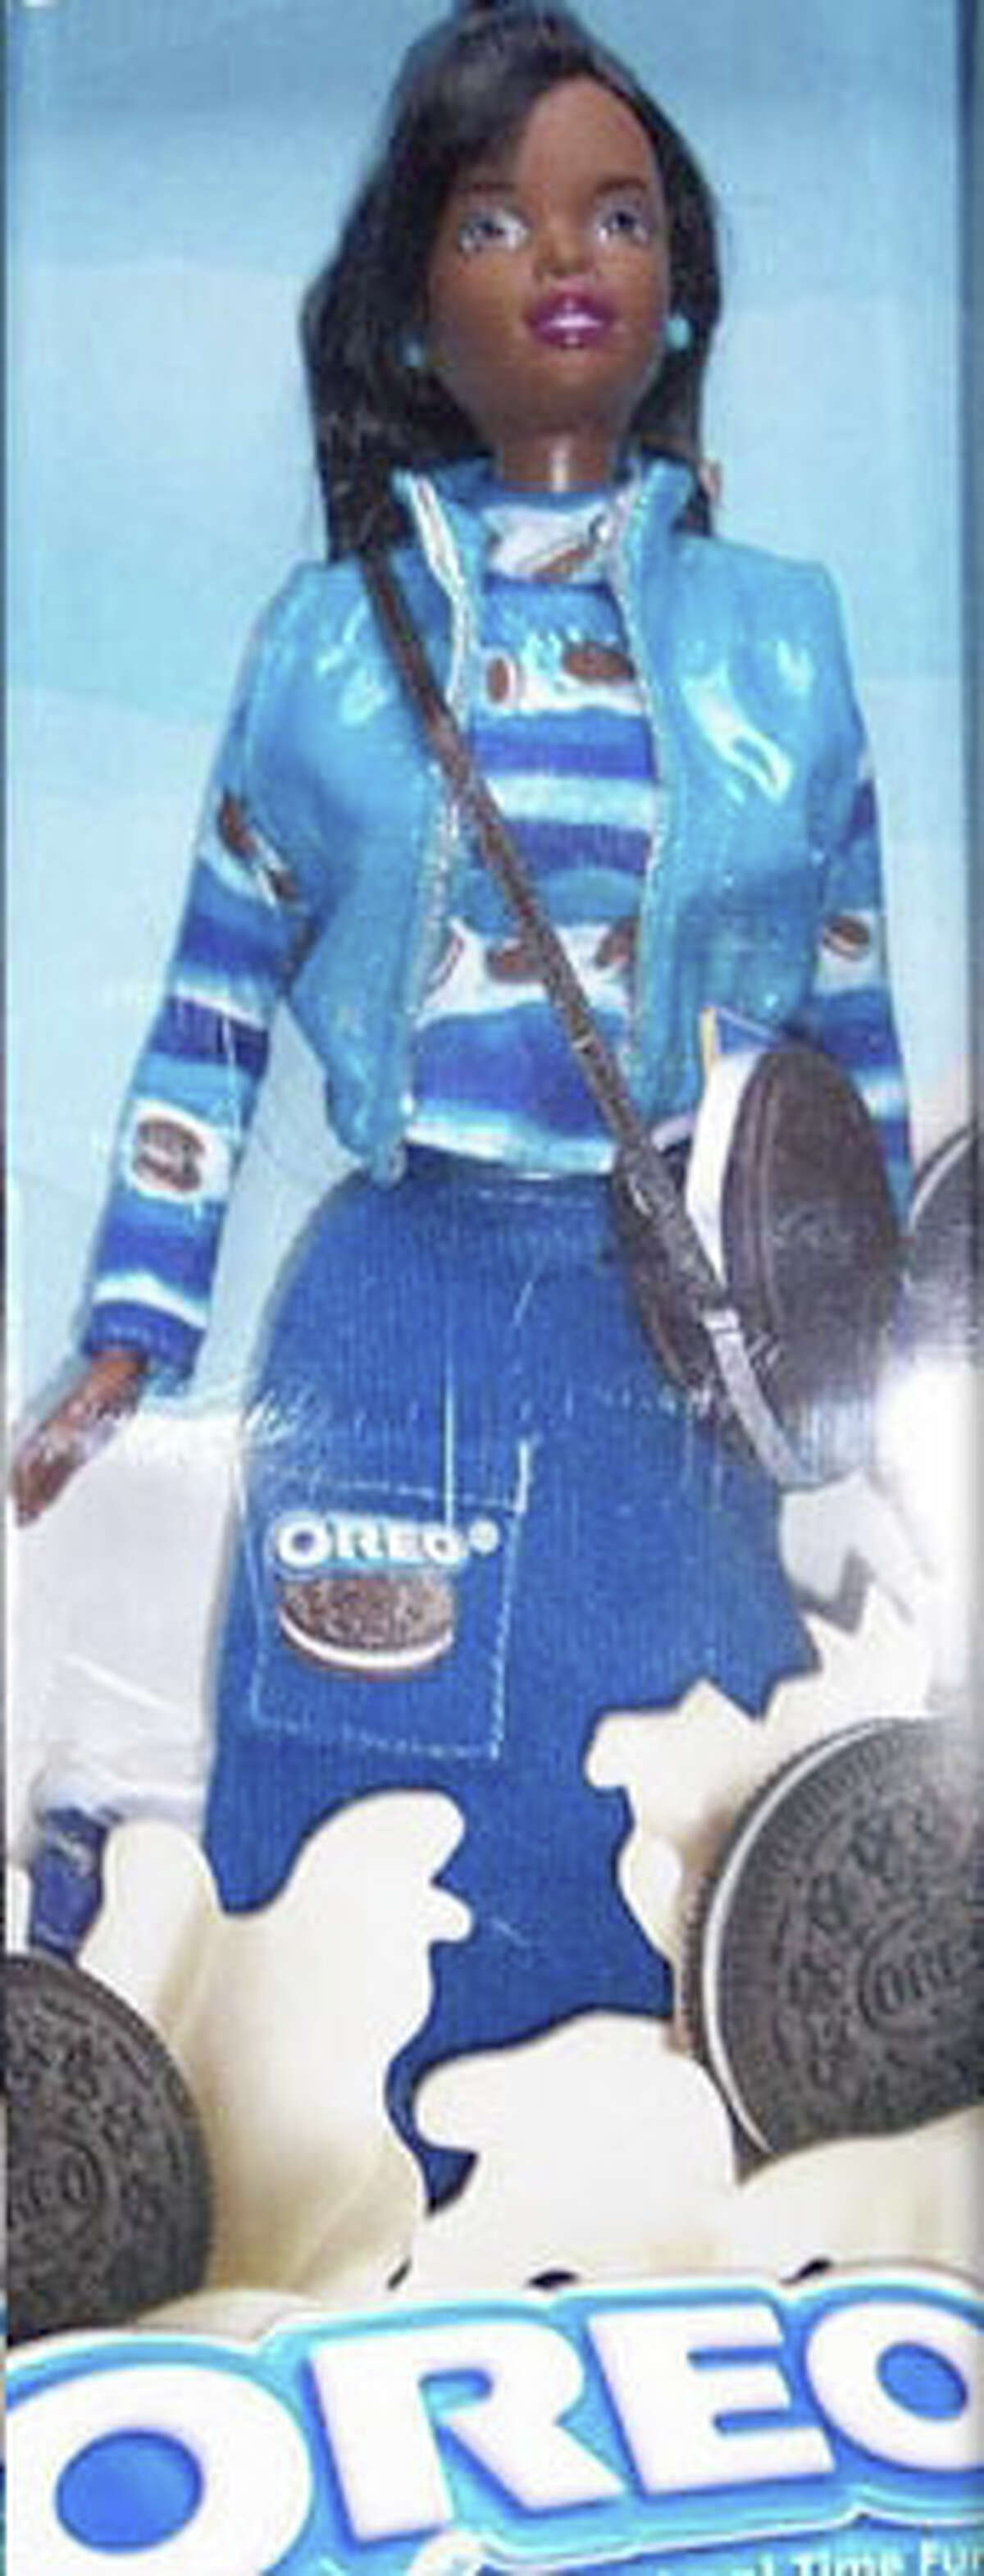 The 1990 launch of Oreo Fun Barbie was met with outrage since Oreo is a derogatory term in the African-American community.